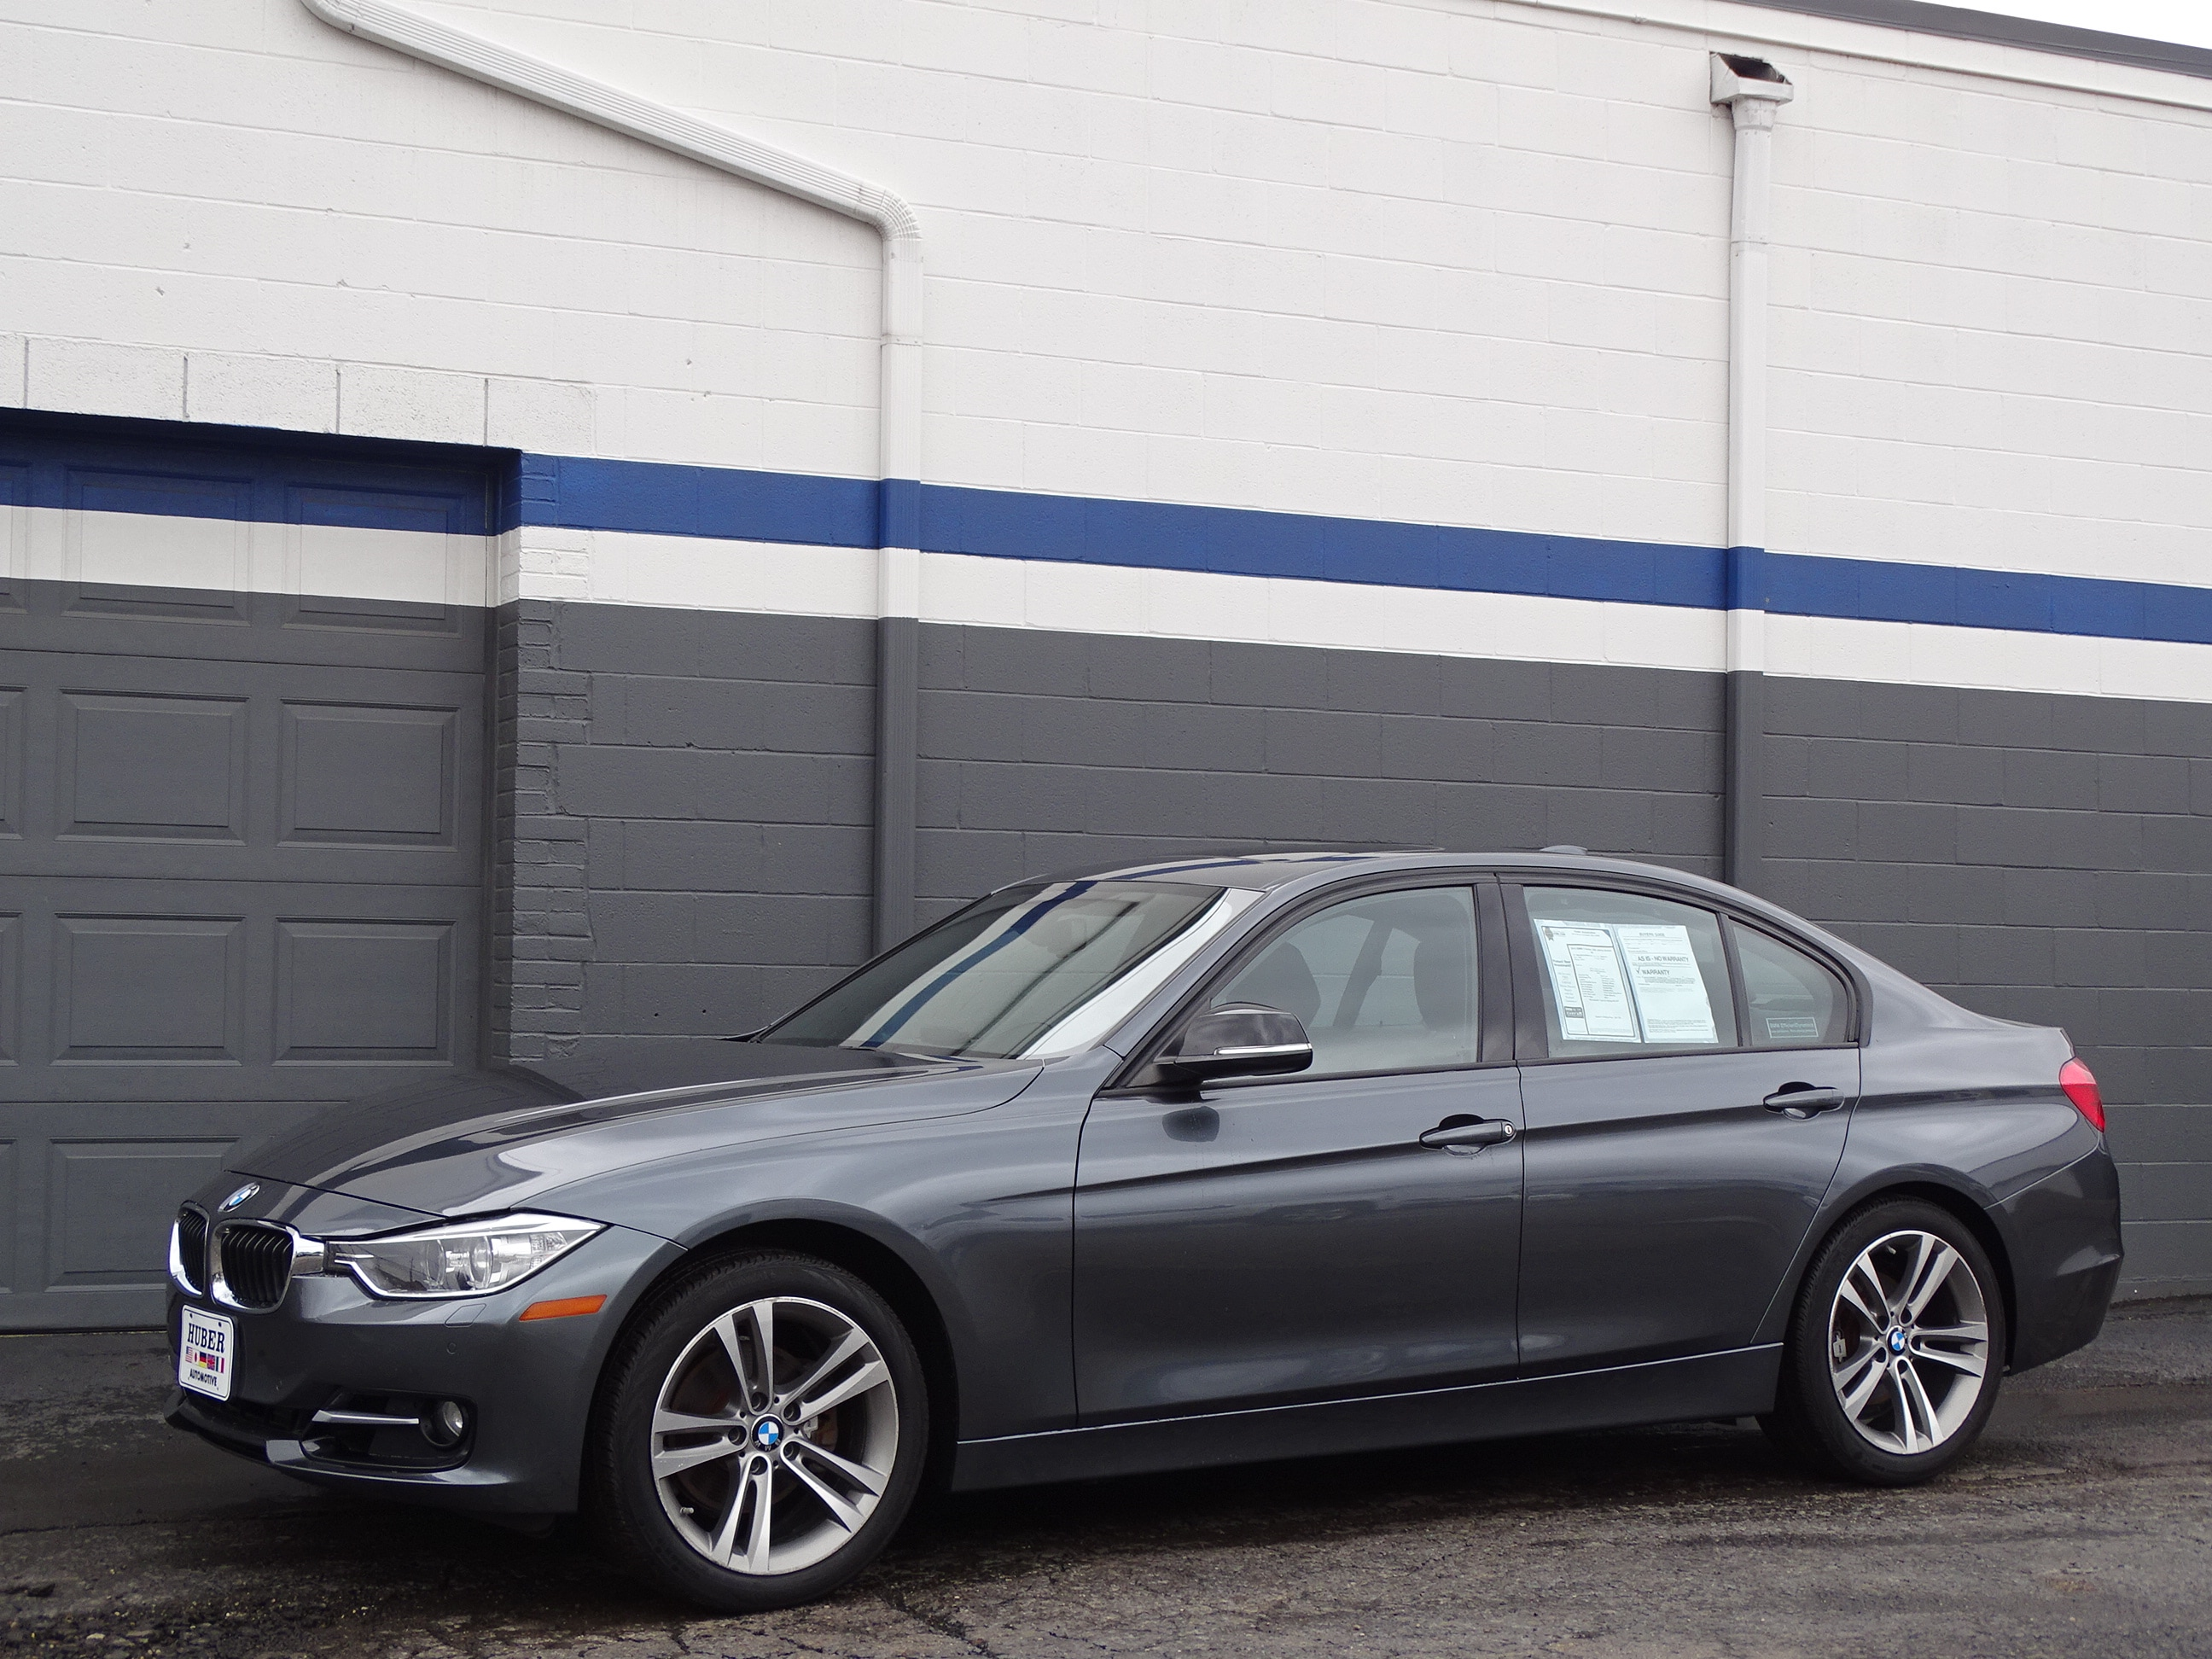 Used 3 Series 2014 Bmw 328i Xdrive 51986 Miles Mineral Gray Sedan I 4 Cyl 8 Speed Automatic 2017 2018 Is In Stock And For Sale Mycarboard Com